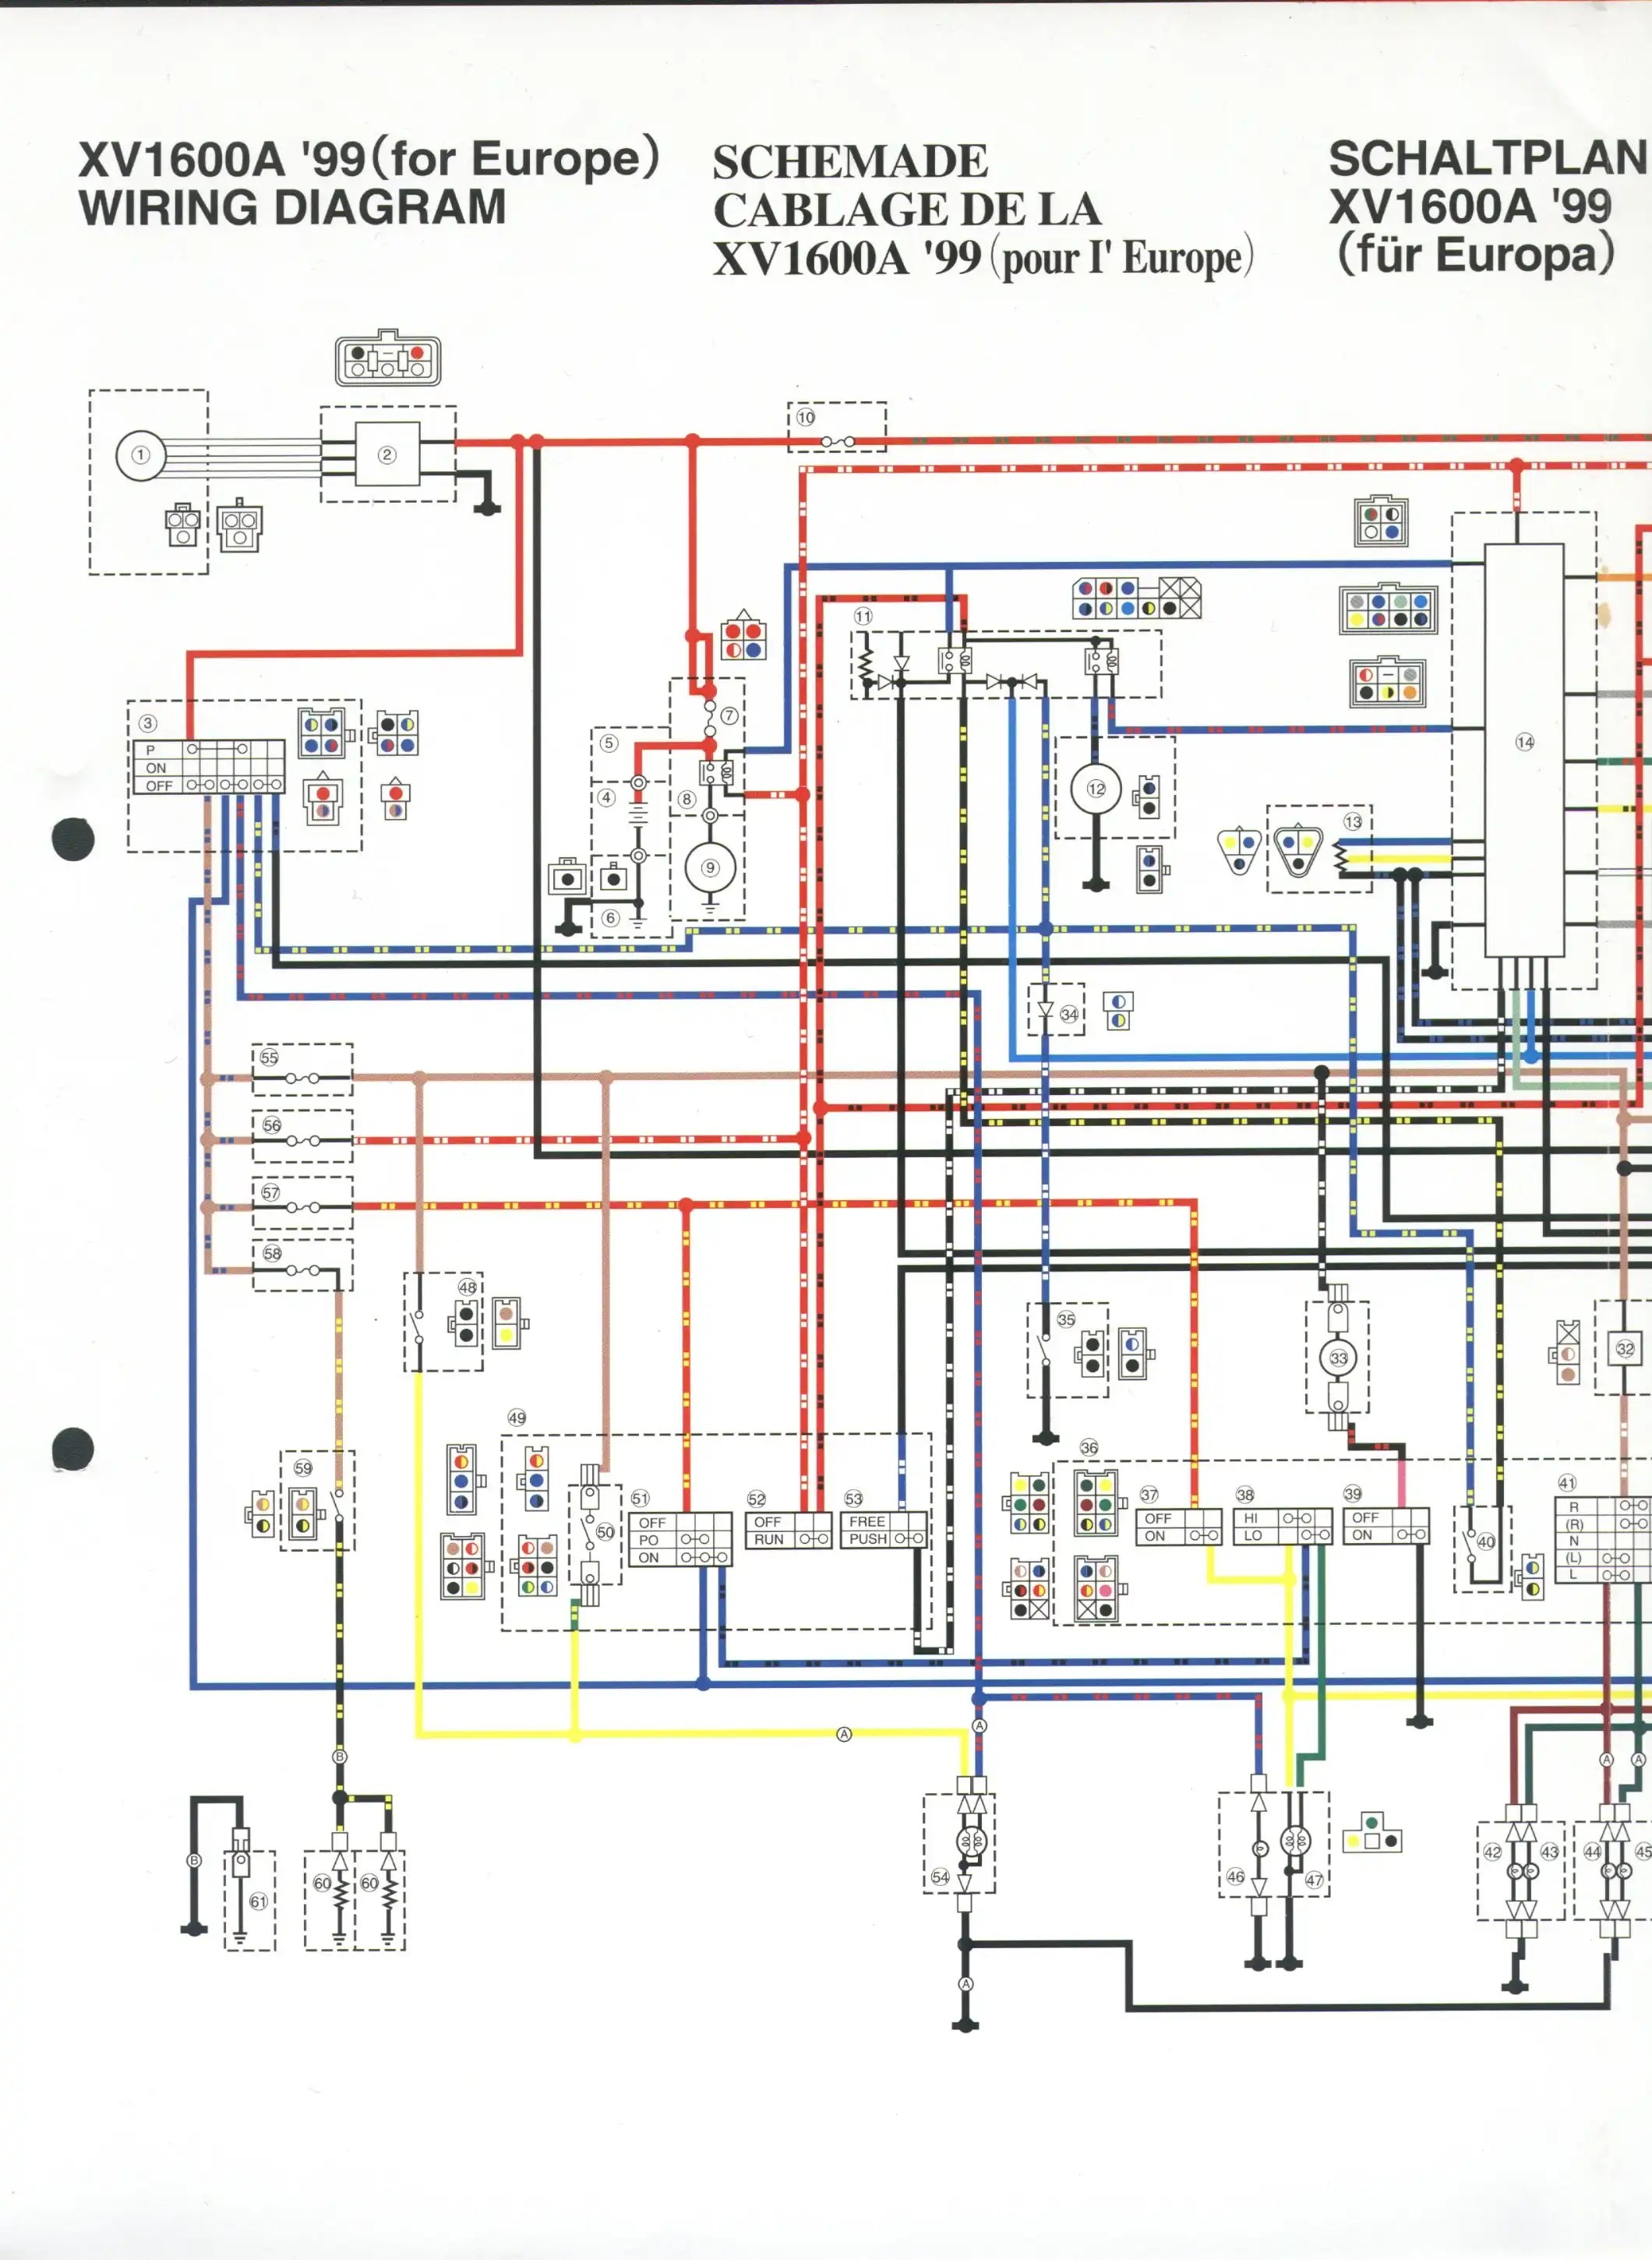 wiring key for xv1600 pdf file  [ 2120 x 2900 Pixel ]